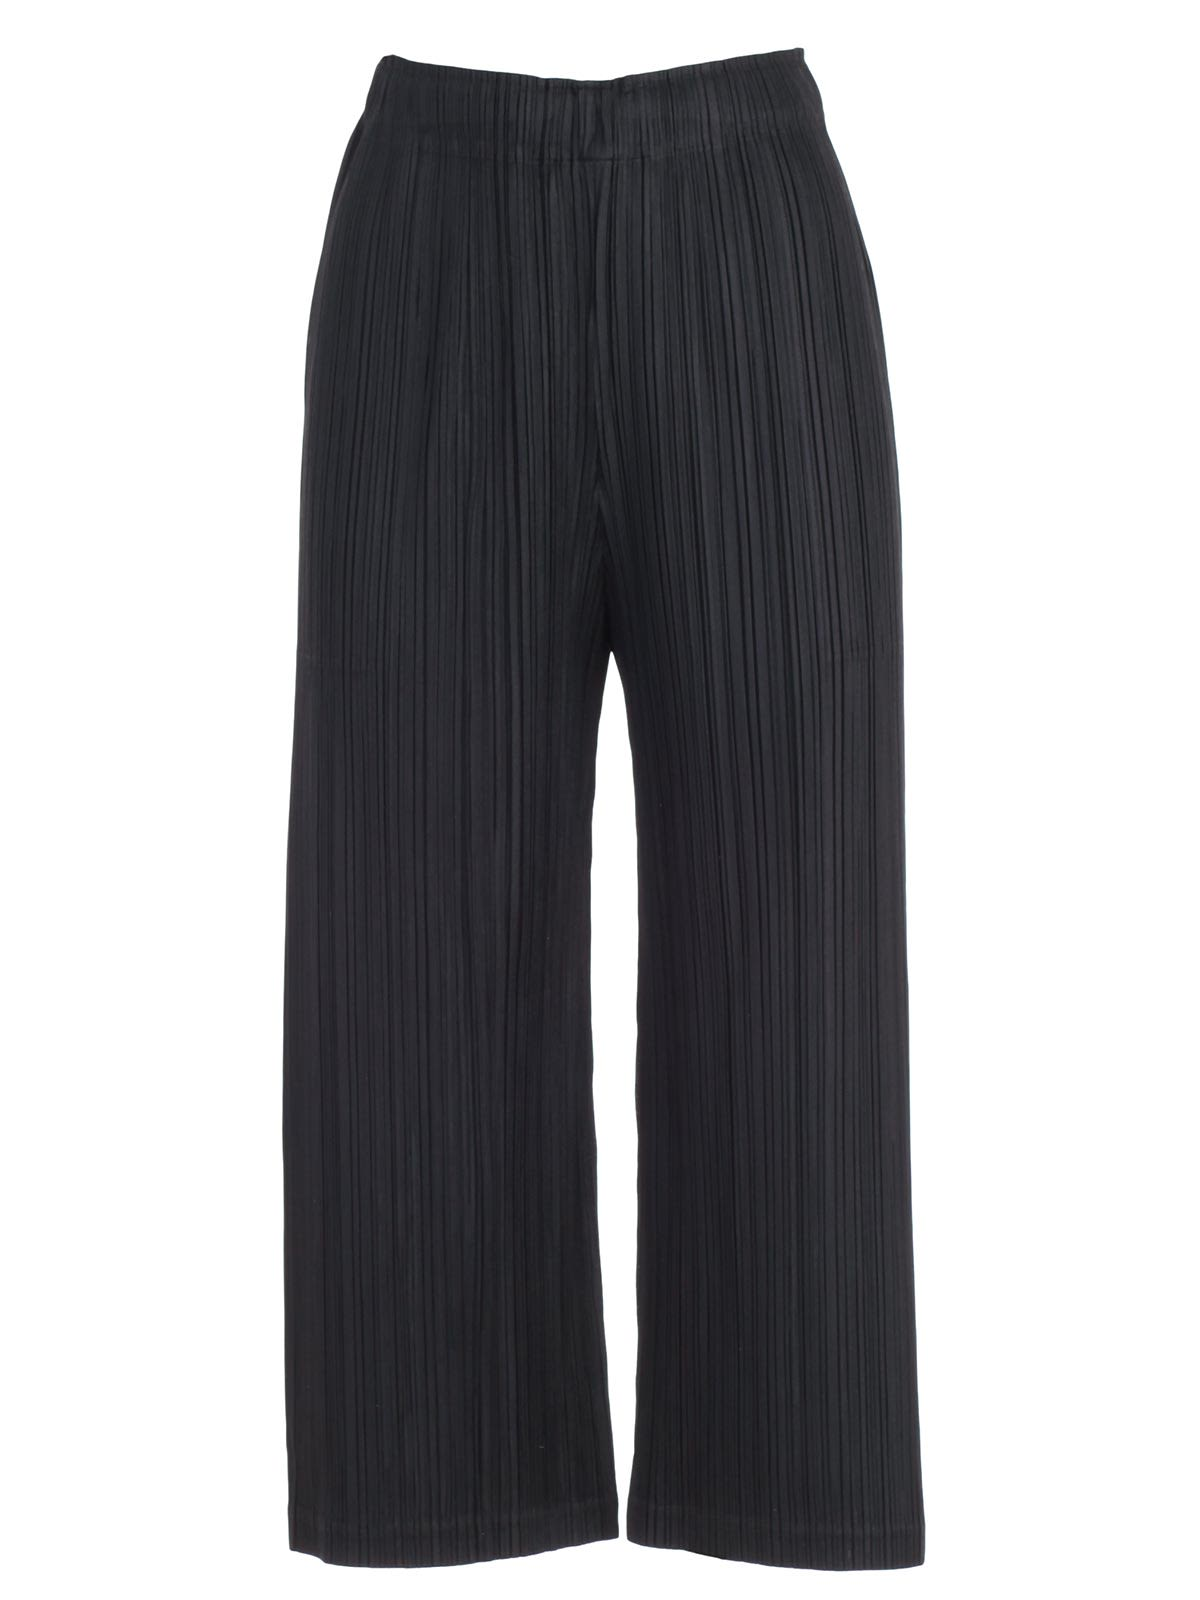 be9dbf76f2c9 Pleats Please Issey Miyake Pleats Please By Issey Miyake Cropped Pleated  Trousers - Black ...